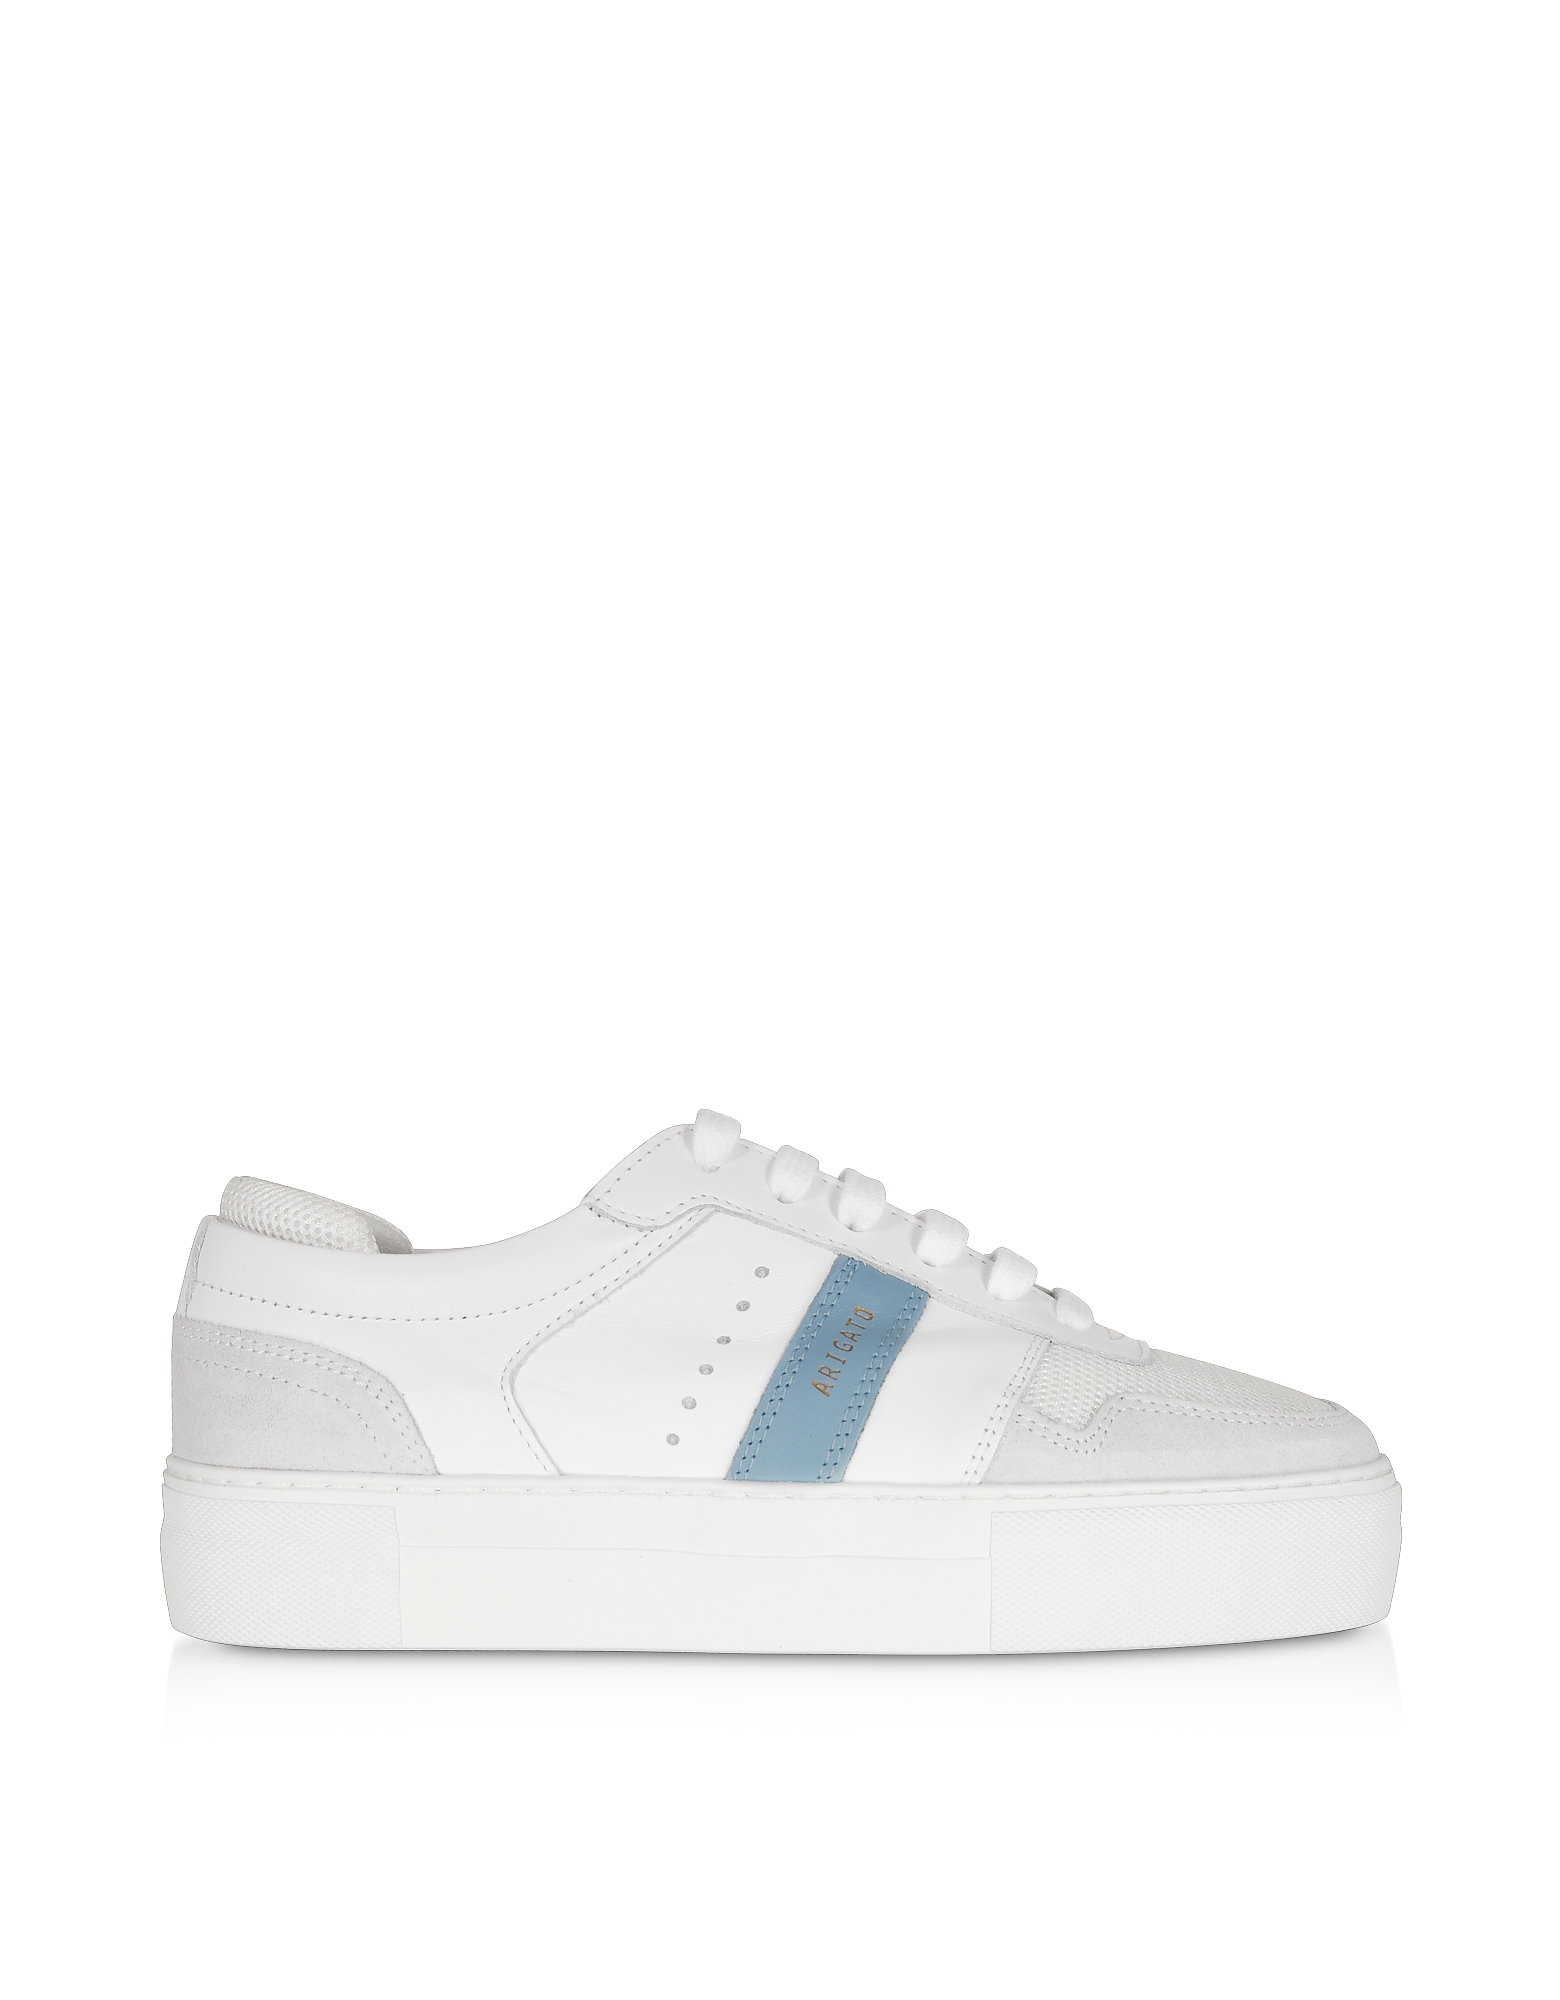 Axel Arigato Designer Shoes, Detailed Platform White/Dusty Blue Leather Women's Sneakers